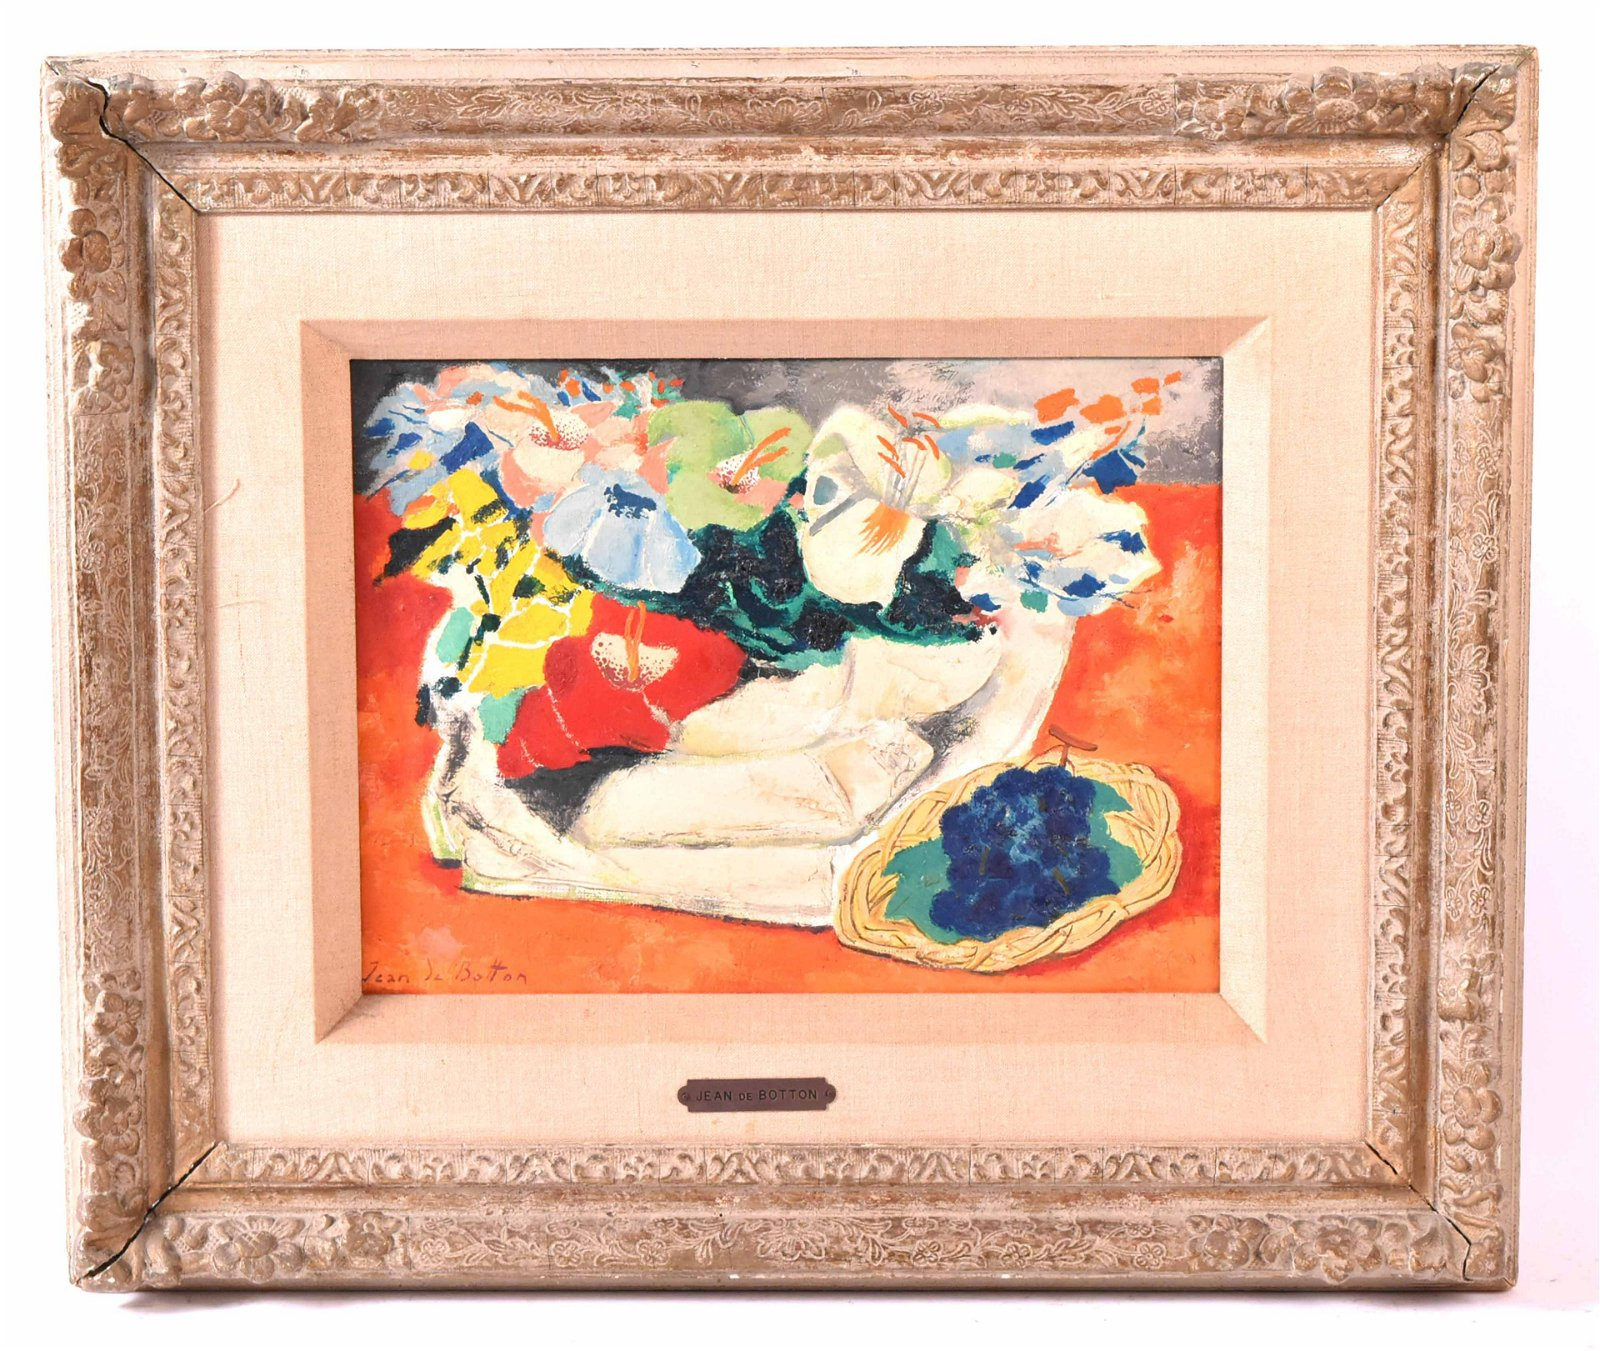 Oil on Canvas, Abstract Still Life, Jean deBatton